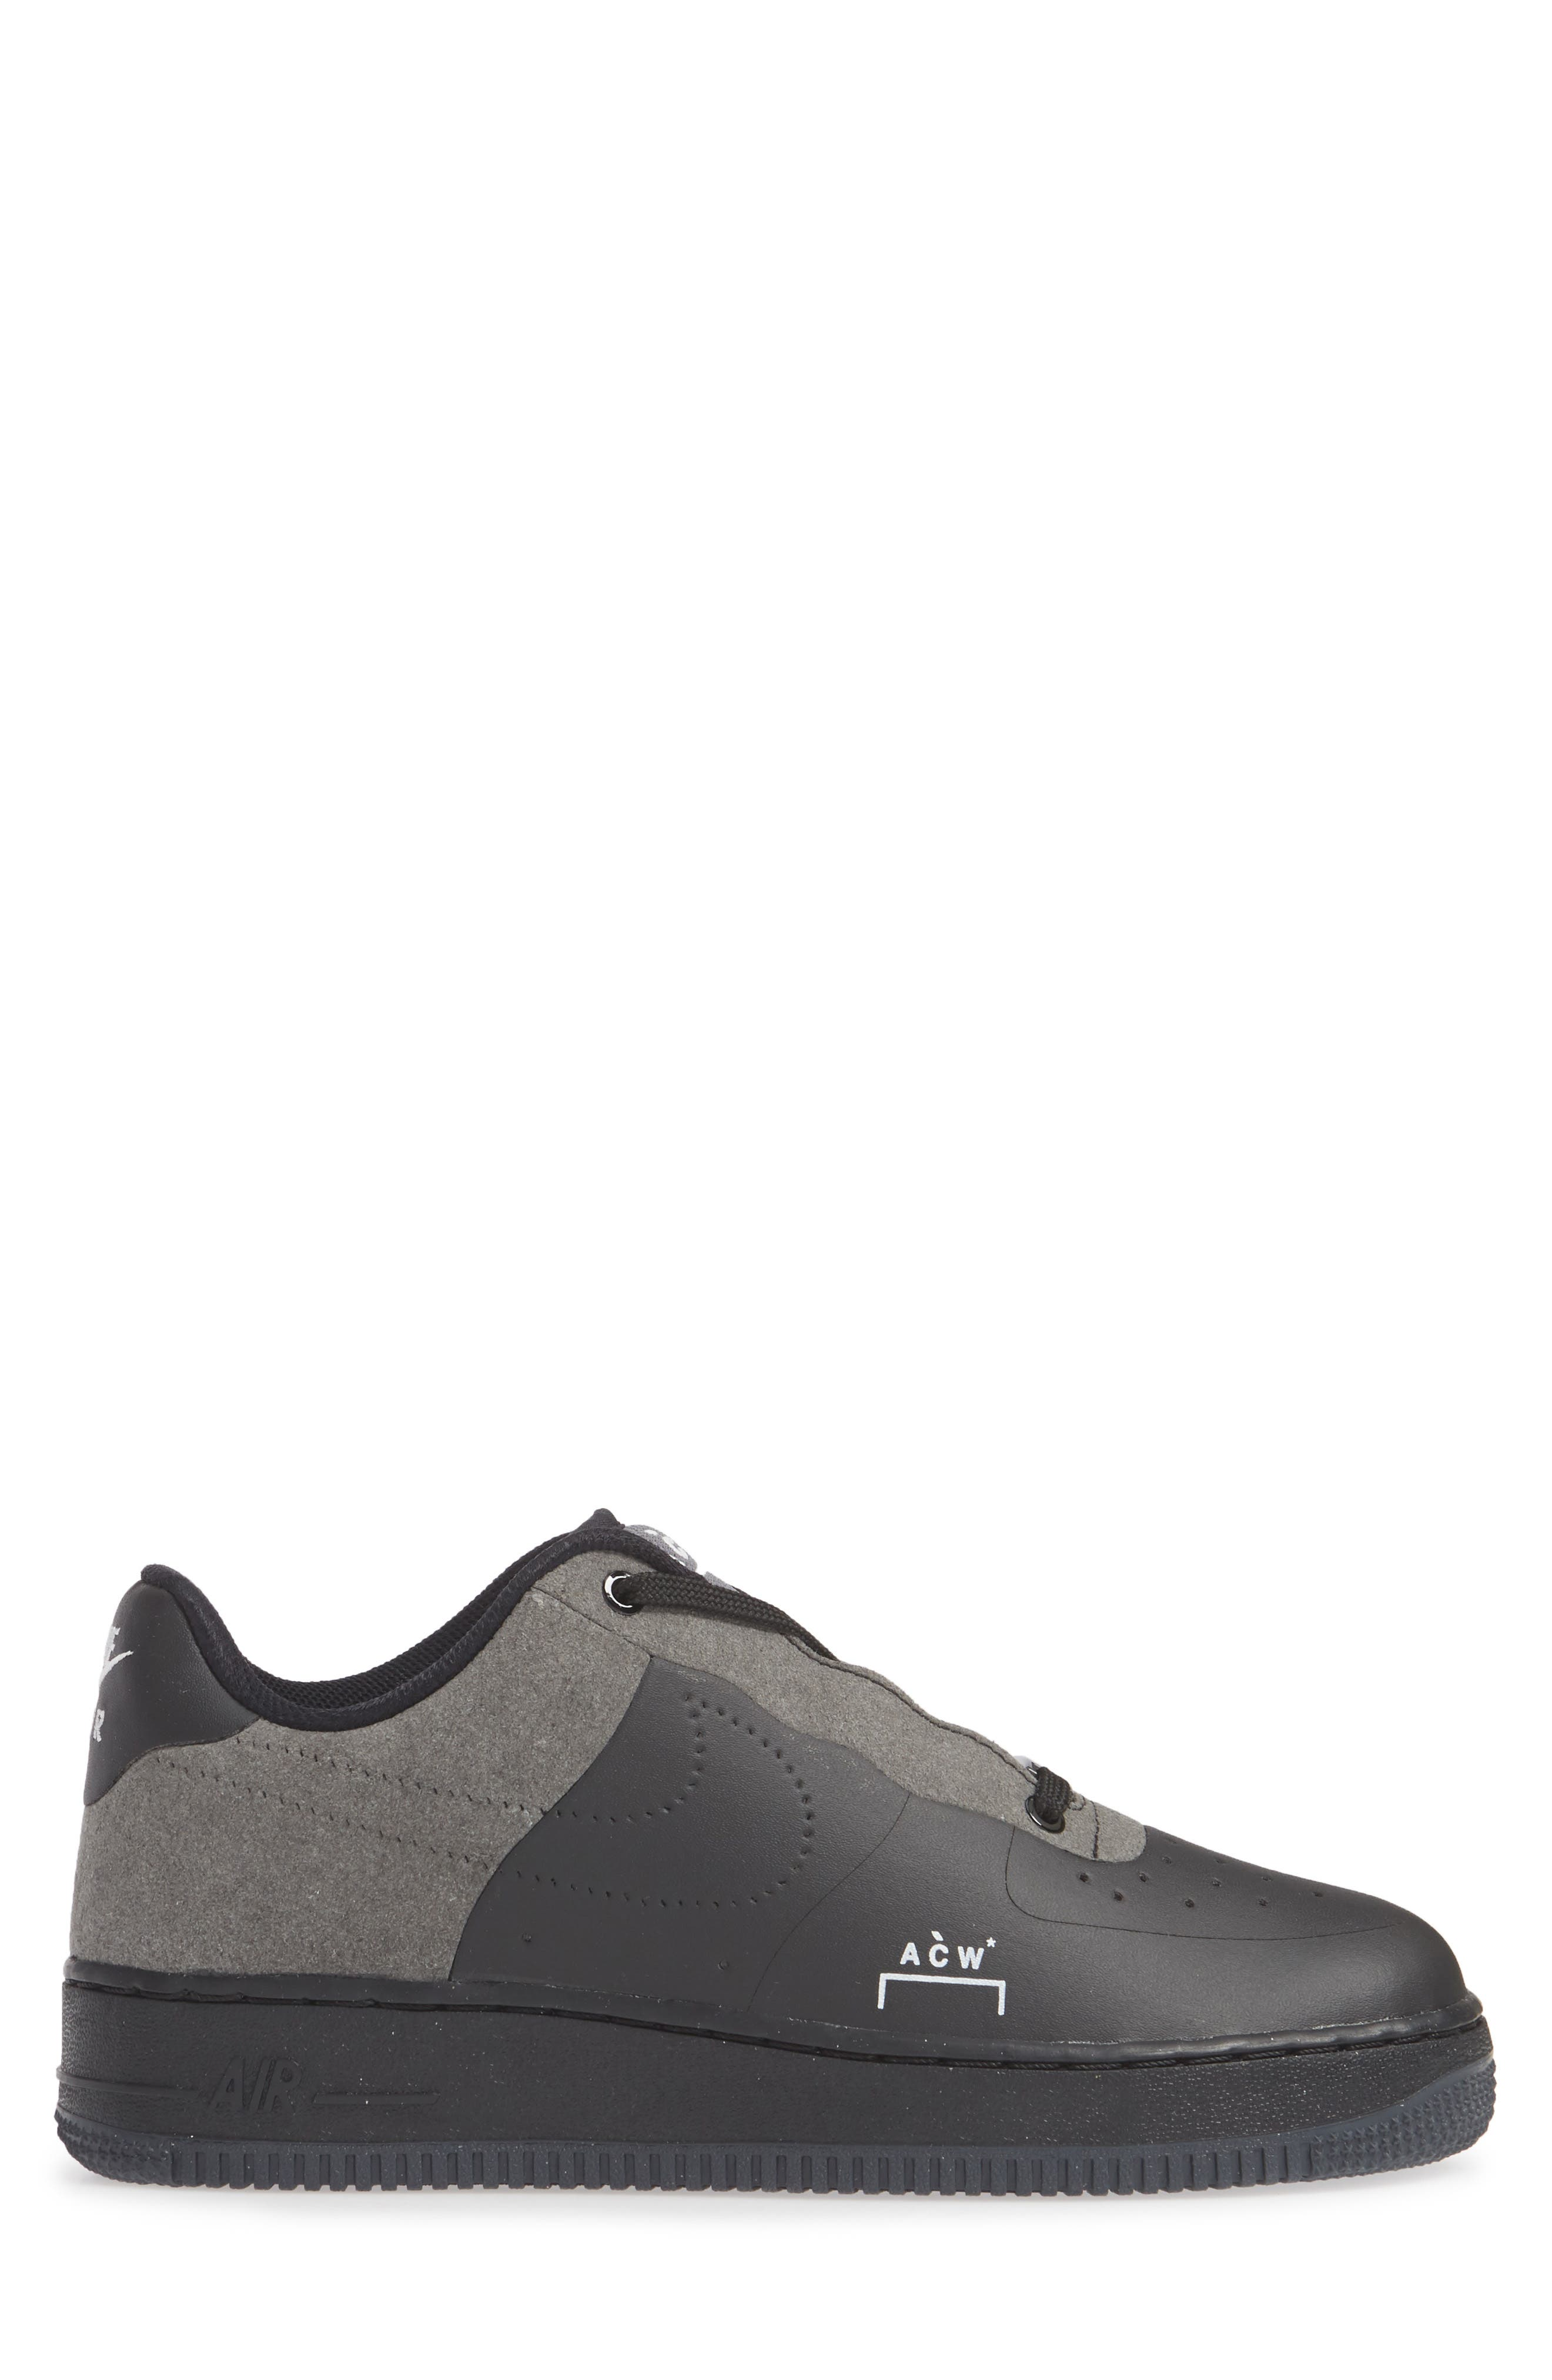 x A-COLD-WALL Air Force 1 '07 Sneaker,                             Alternate thumbnail 3, color,                             BLACK/ WHITE/ DARK GREY